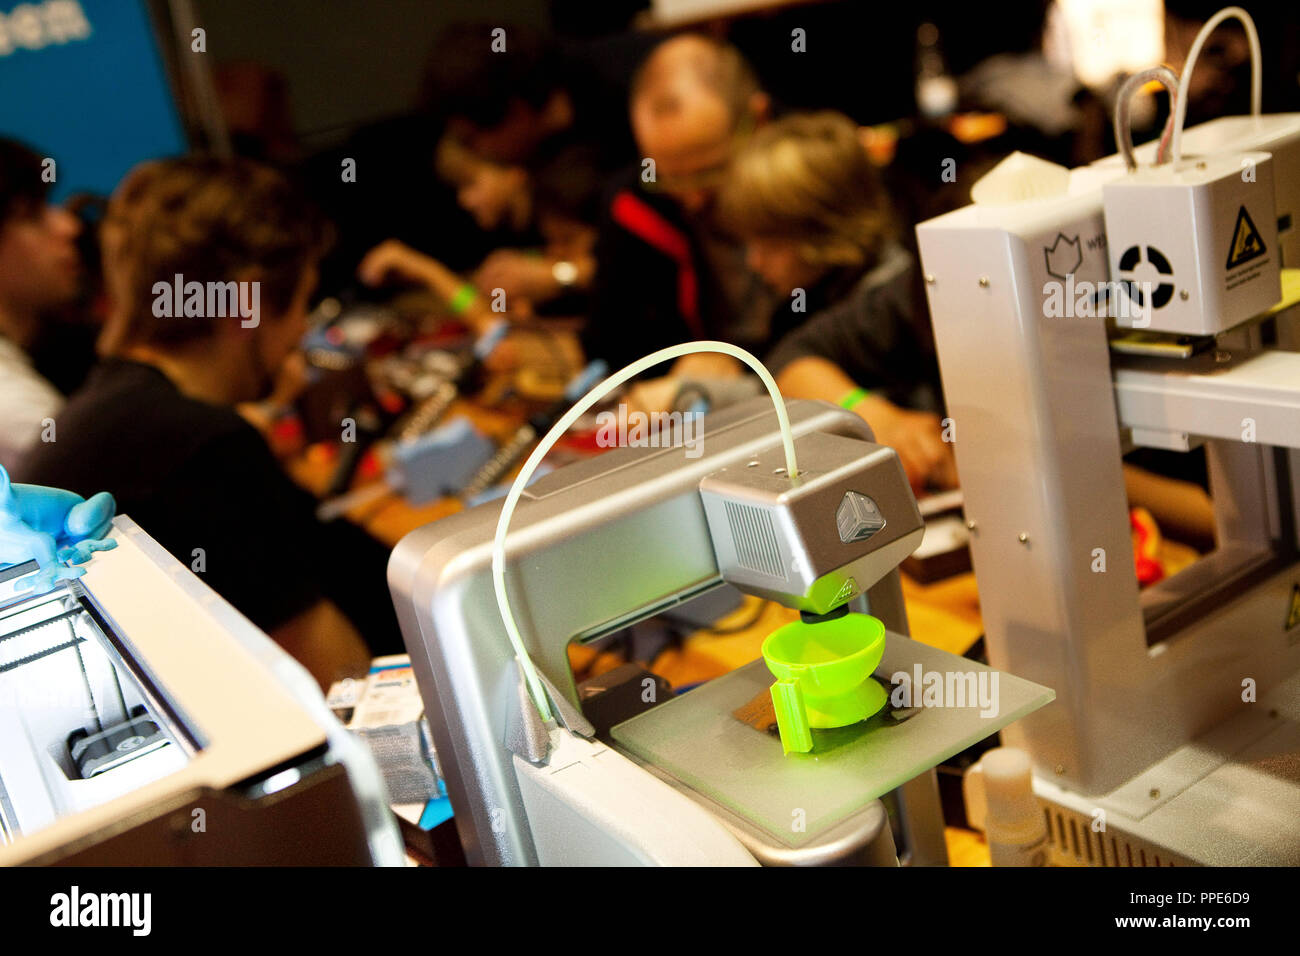 3-D printer at the Elektro Conrad stand at the maker fair 'Make Munich' in the Tonhalle of the Kultfabrik. It heats plastic and prints it in many layers on top of each other. Here is a green cup. - Stock Image